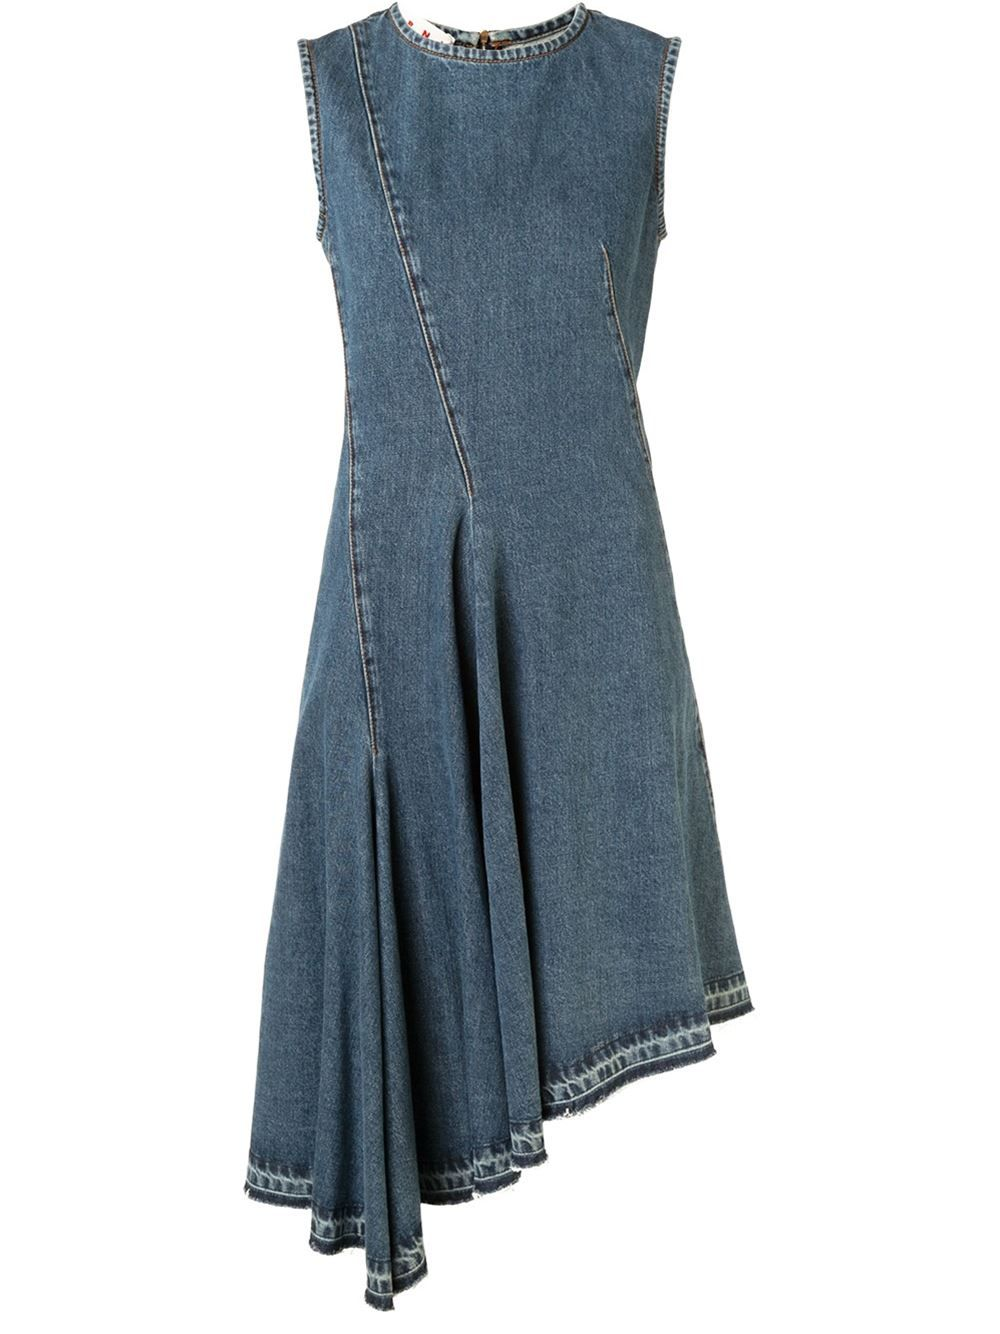 Pin by katherine peringer on sewing pinterest clothes denim